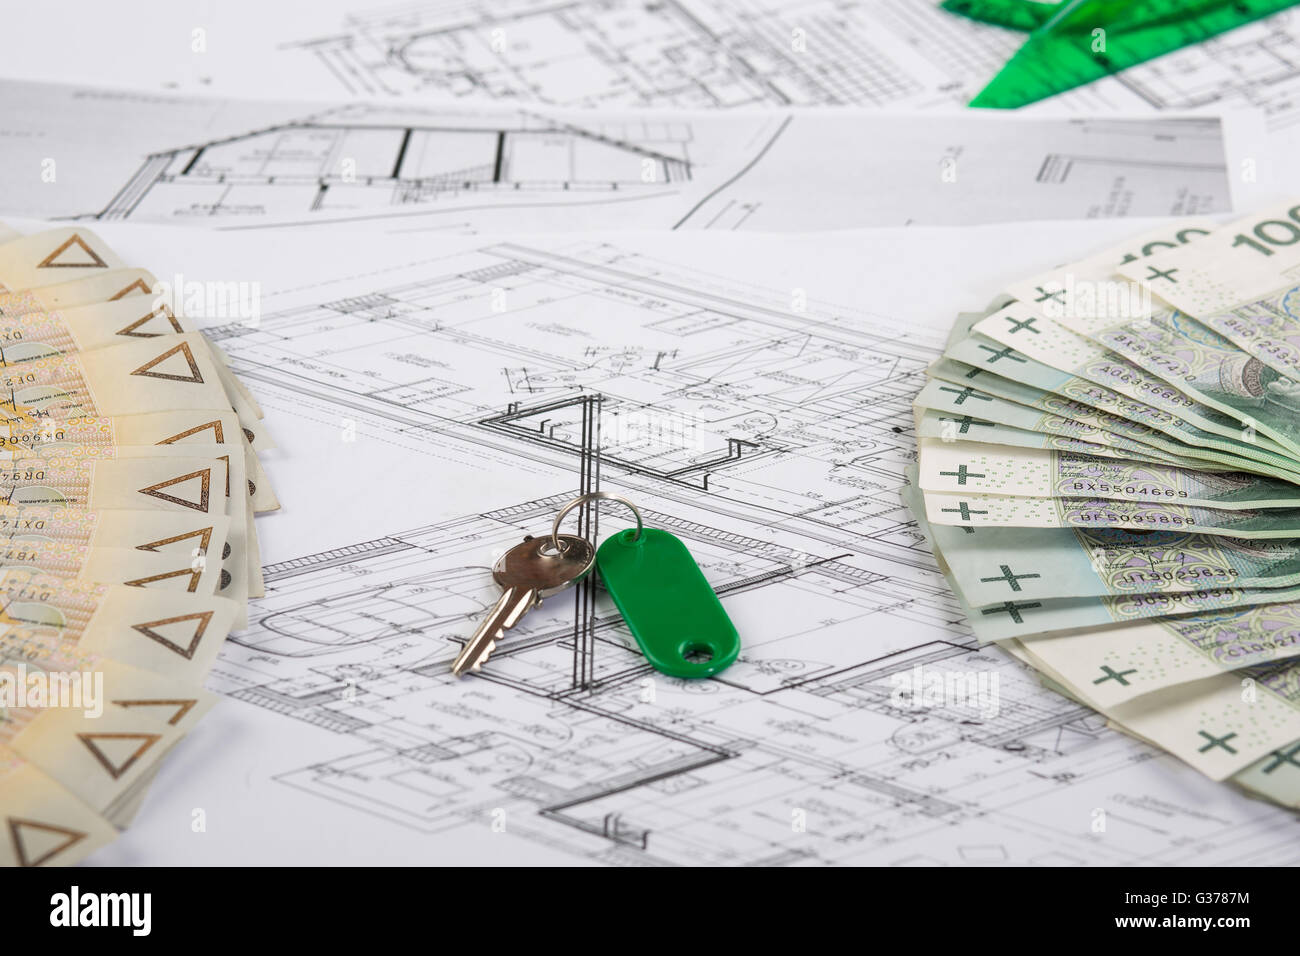 Costing Techniques in Construction Project Management